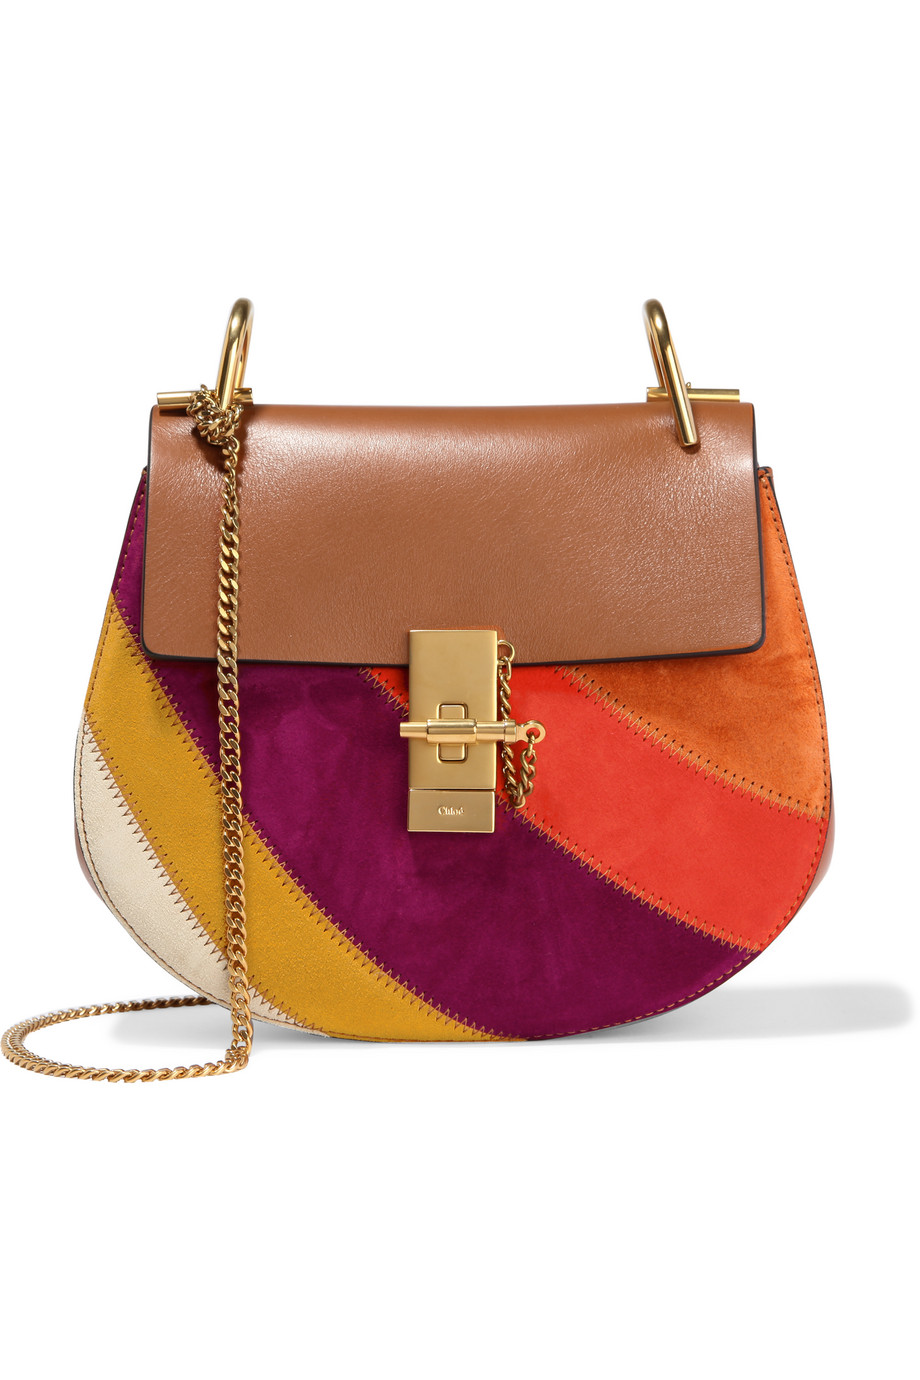 Chloé Drew Small Leather and Suede Shoulder Bag, Light Brown/Purple, Women's